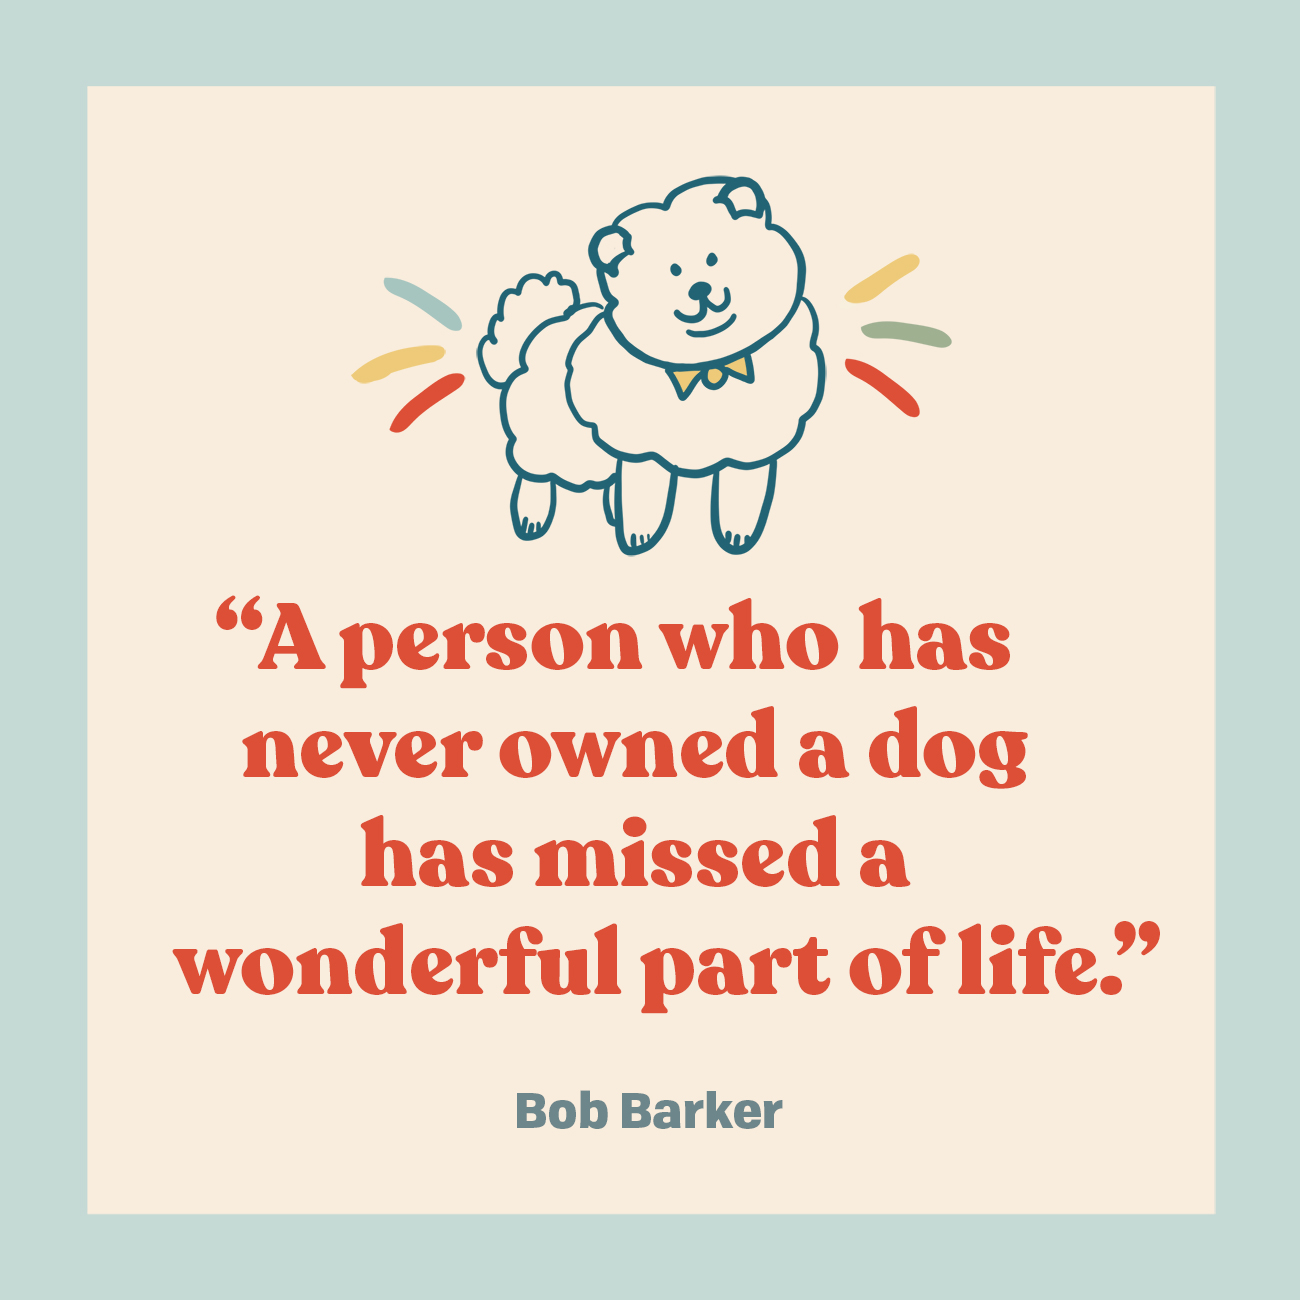 A person who has never owned a dog has missed a wonderful part of life.